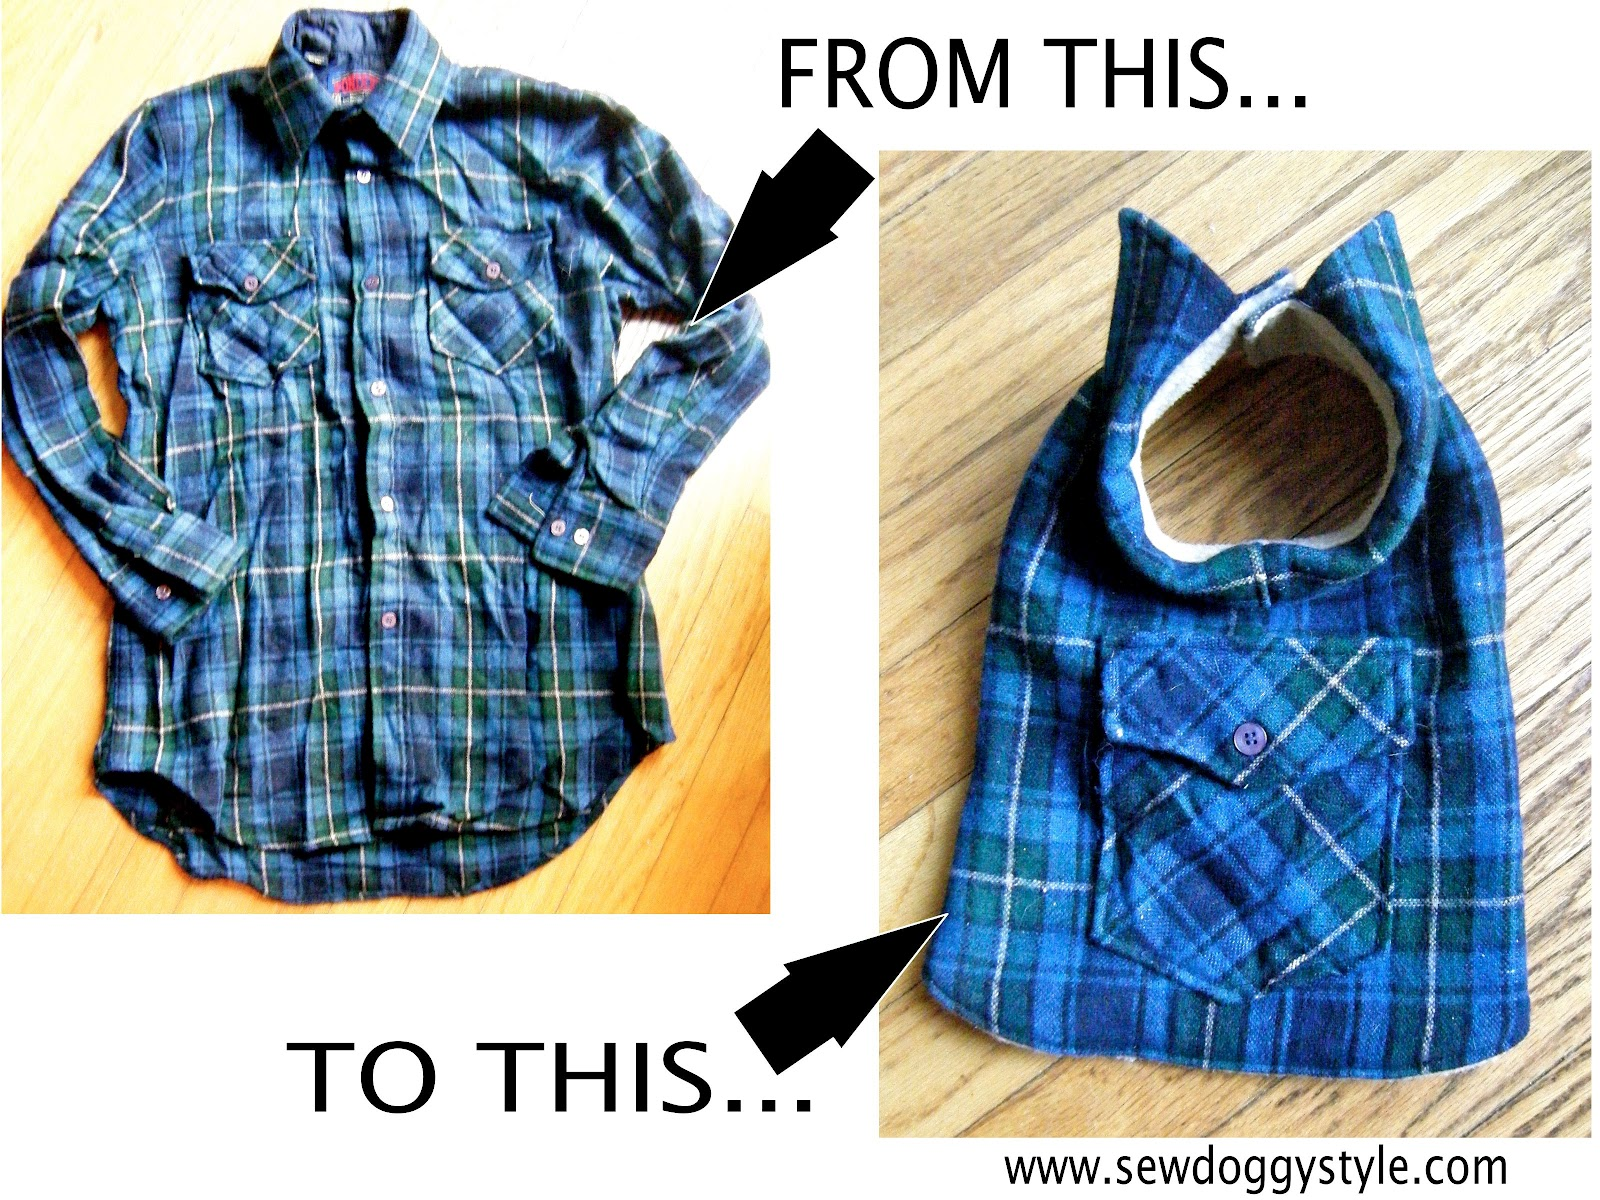 Sew A Dog Coat photo - 1